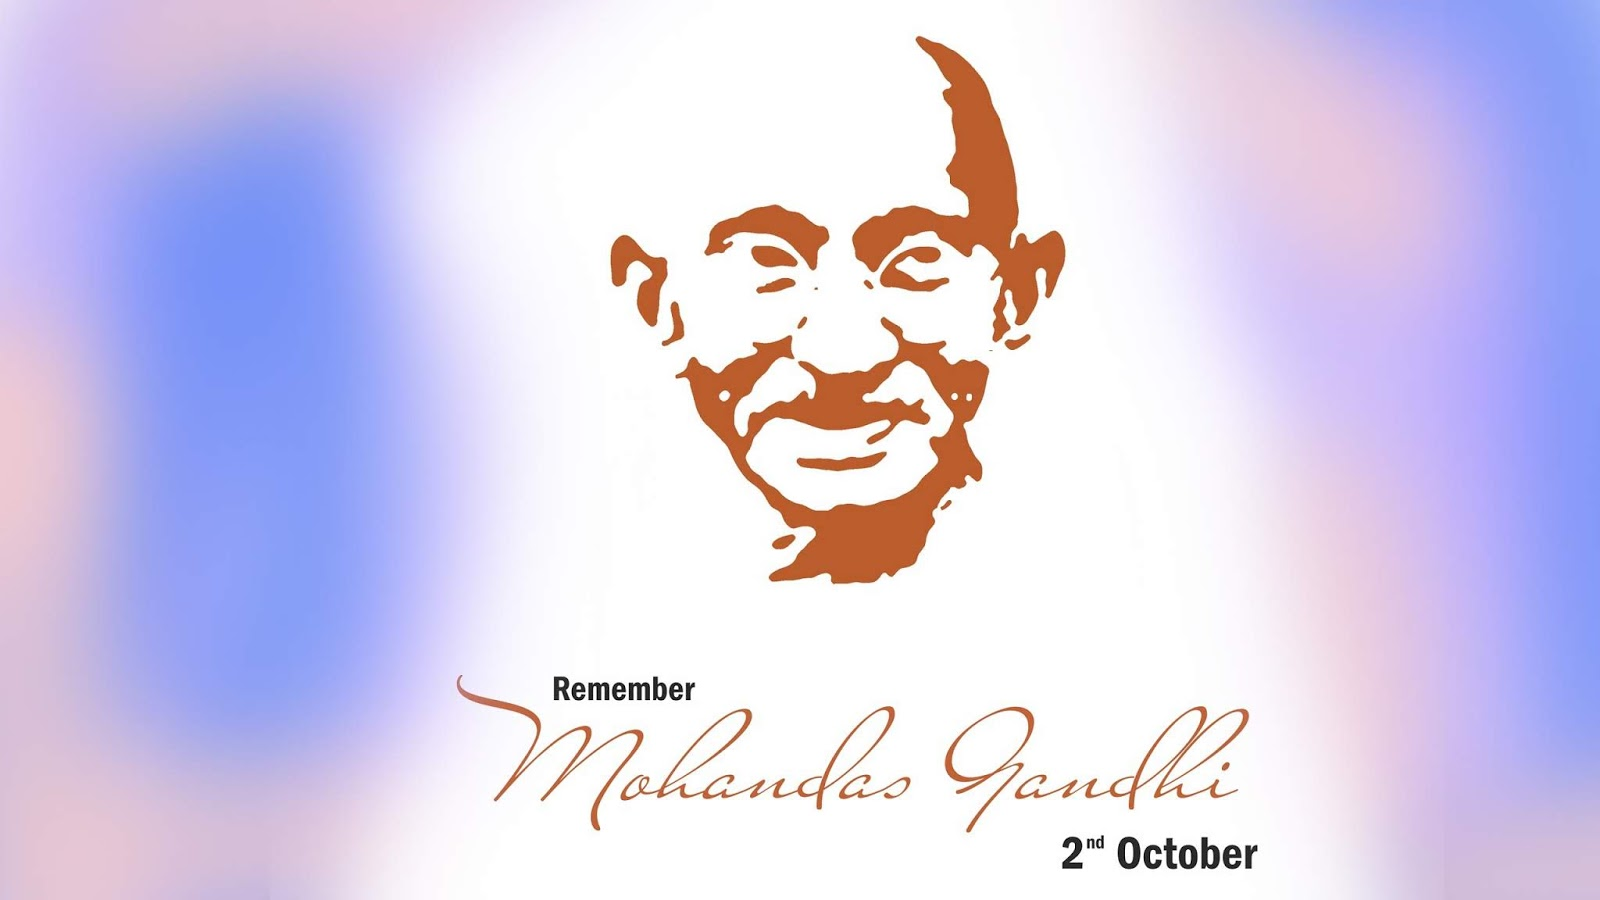 Gandhi Jayanti Gandhi Jayanti Images 2018 Gandhi Jayanti Images